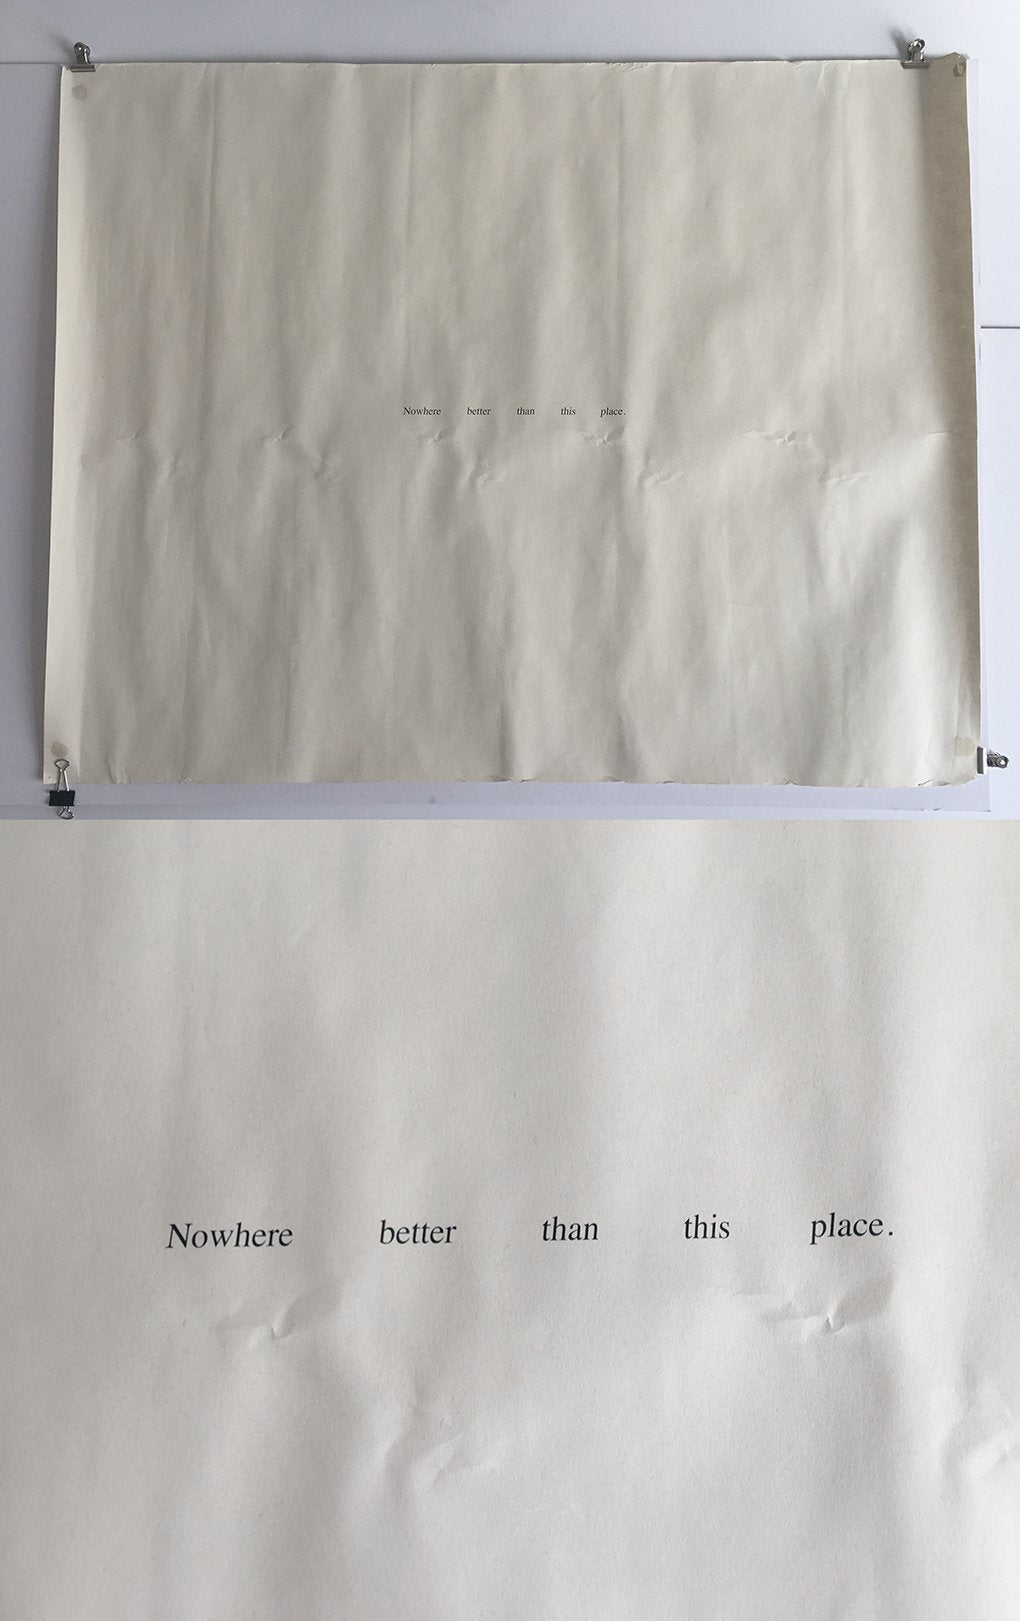 Felix Gonzalez Torres - 'Nowhere Better Than This Place' - Rare Poster